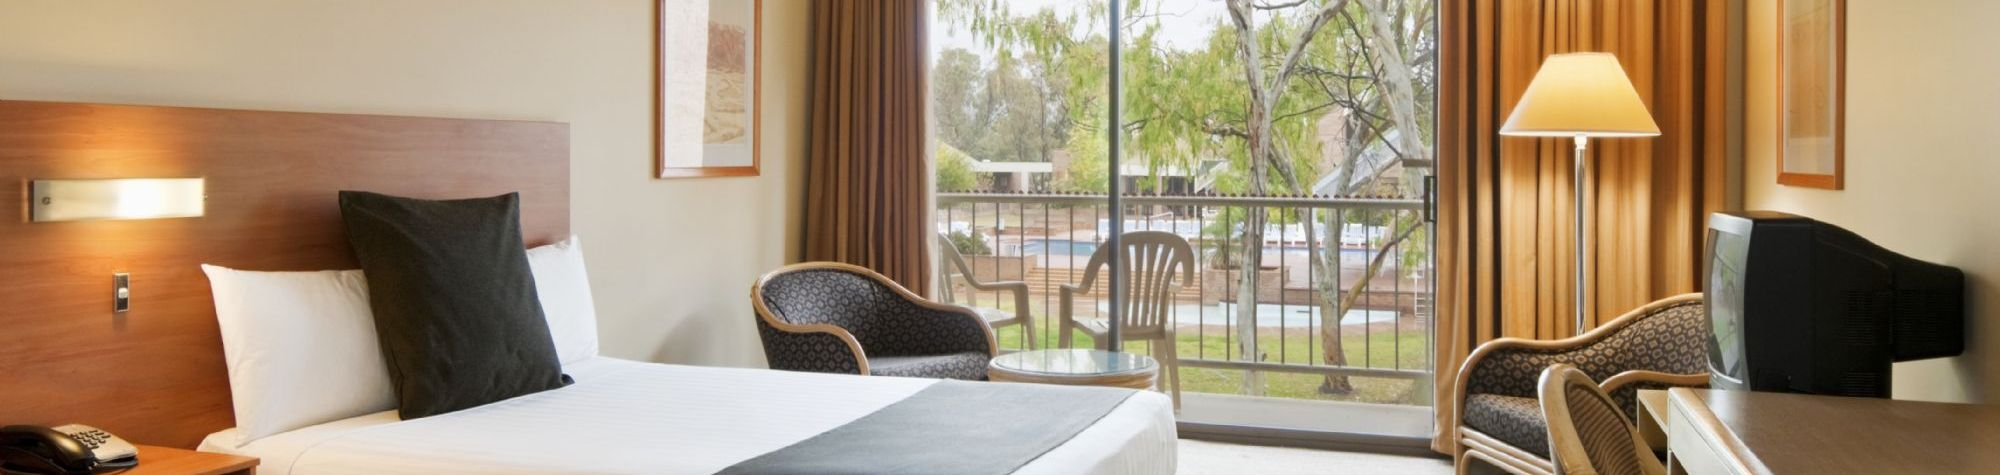 DoubleTree by Hilton, Alice Springs